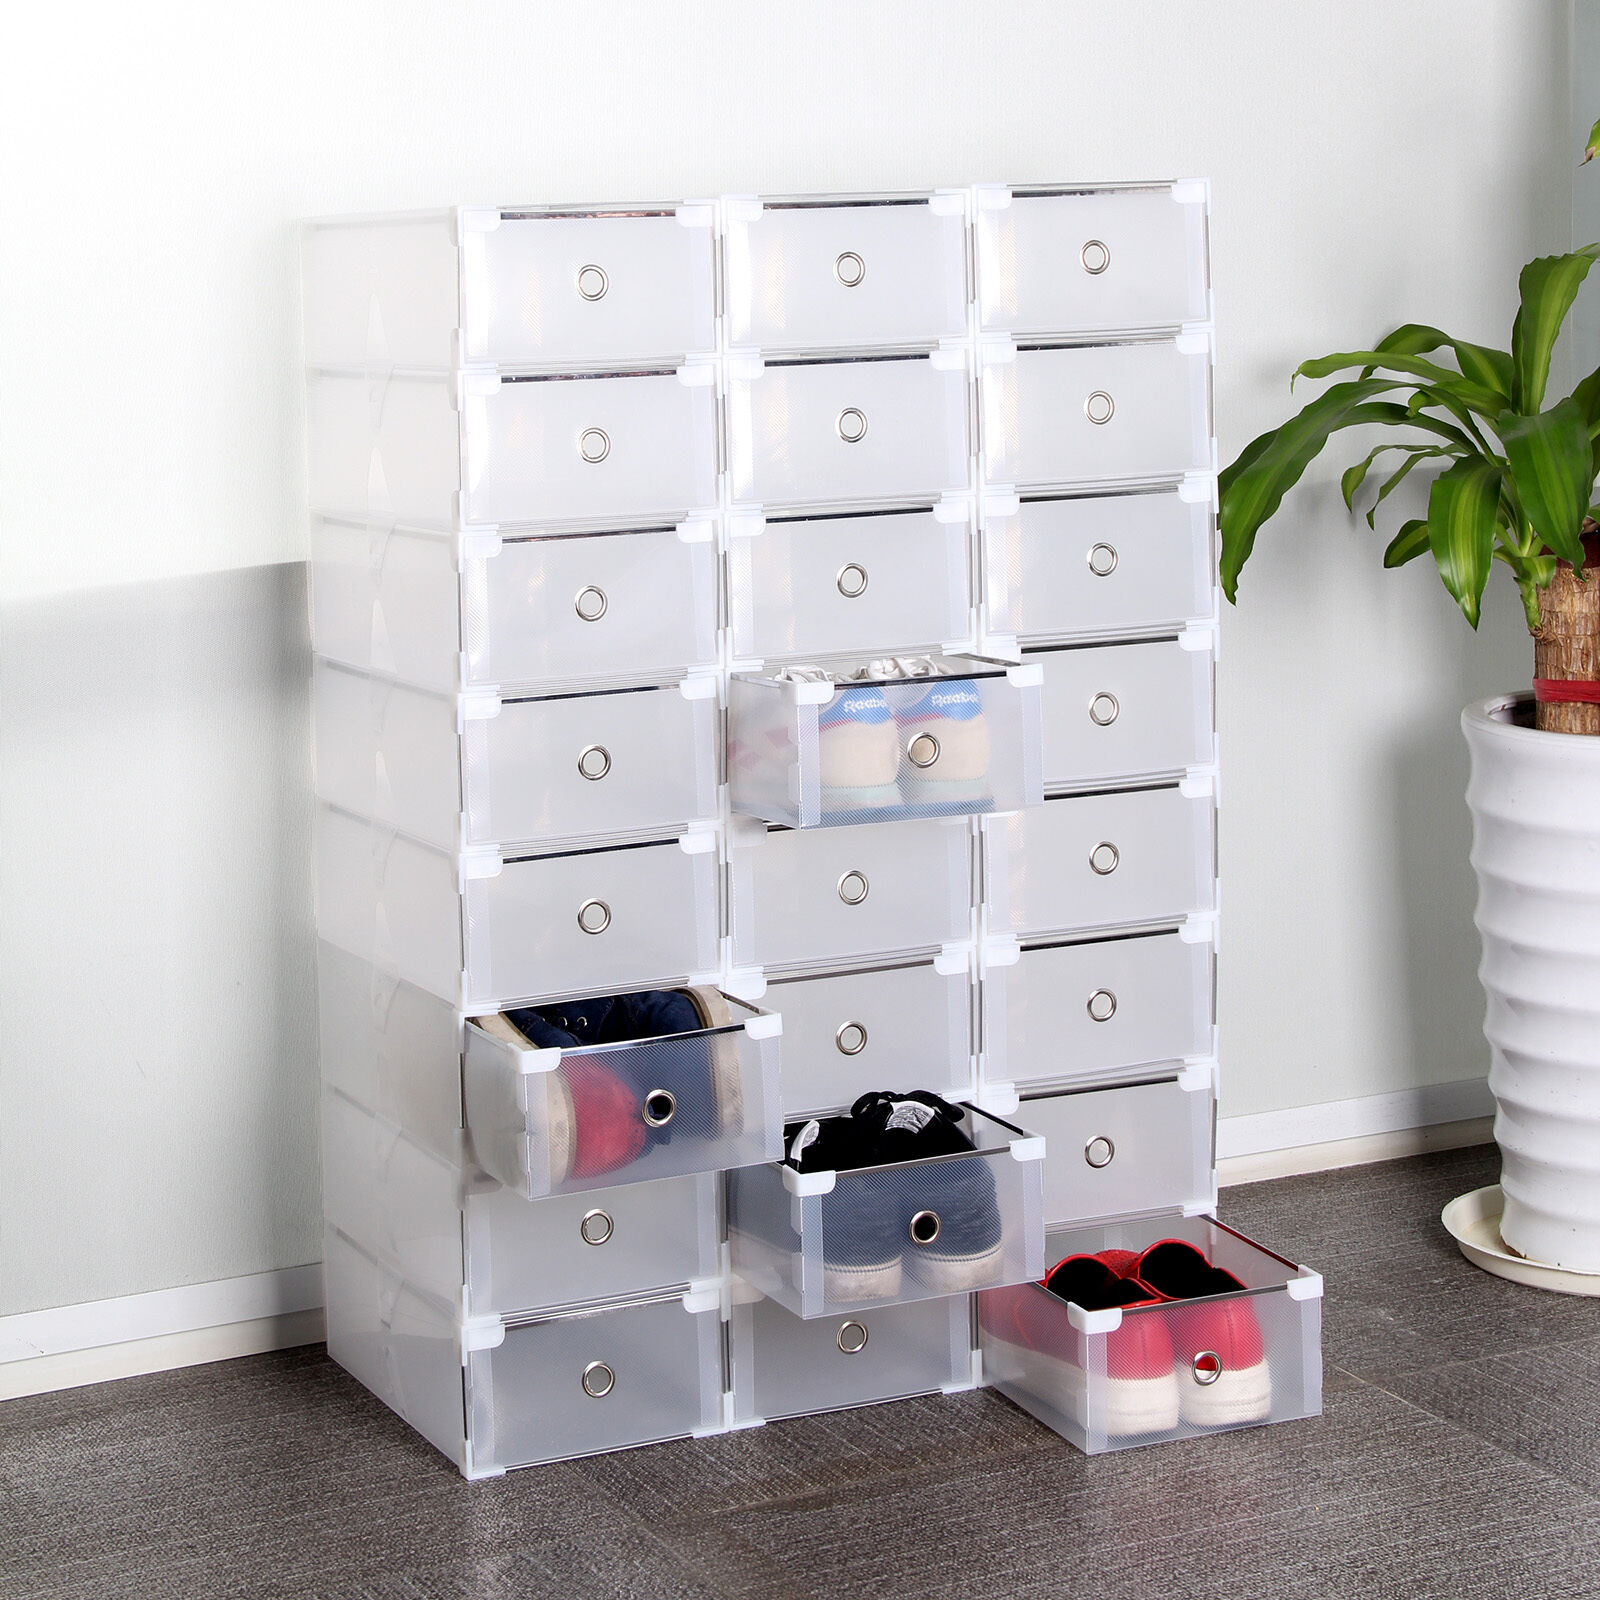 24 plastique empilable bo te chaussures housse tiroir stockage rangement eur 41 49 picclick fr. Black Bedroom Furniture Sets. Home Design Ideas